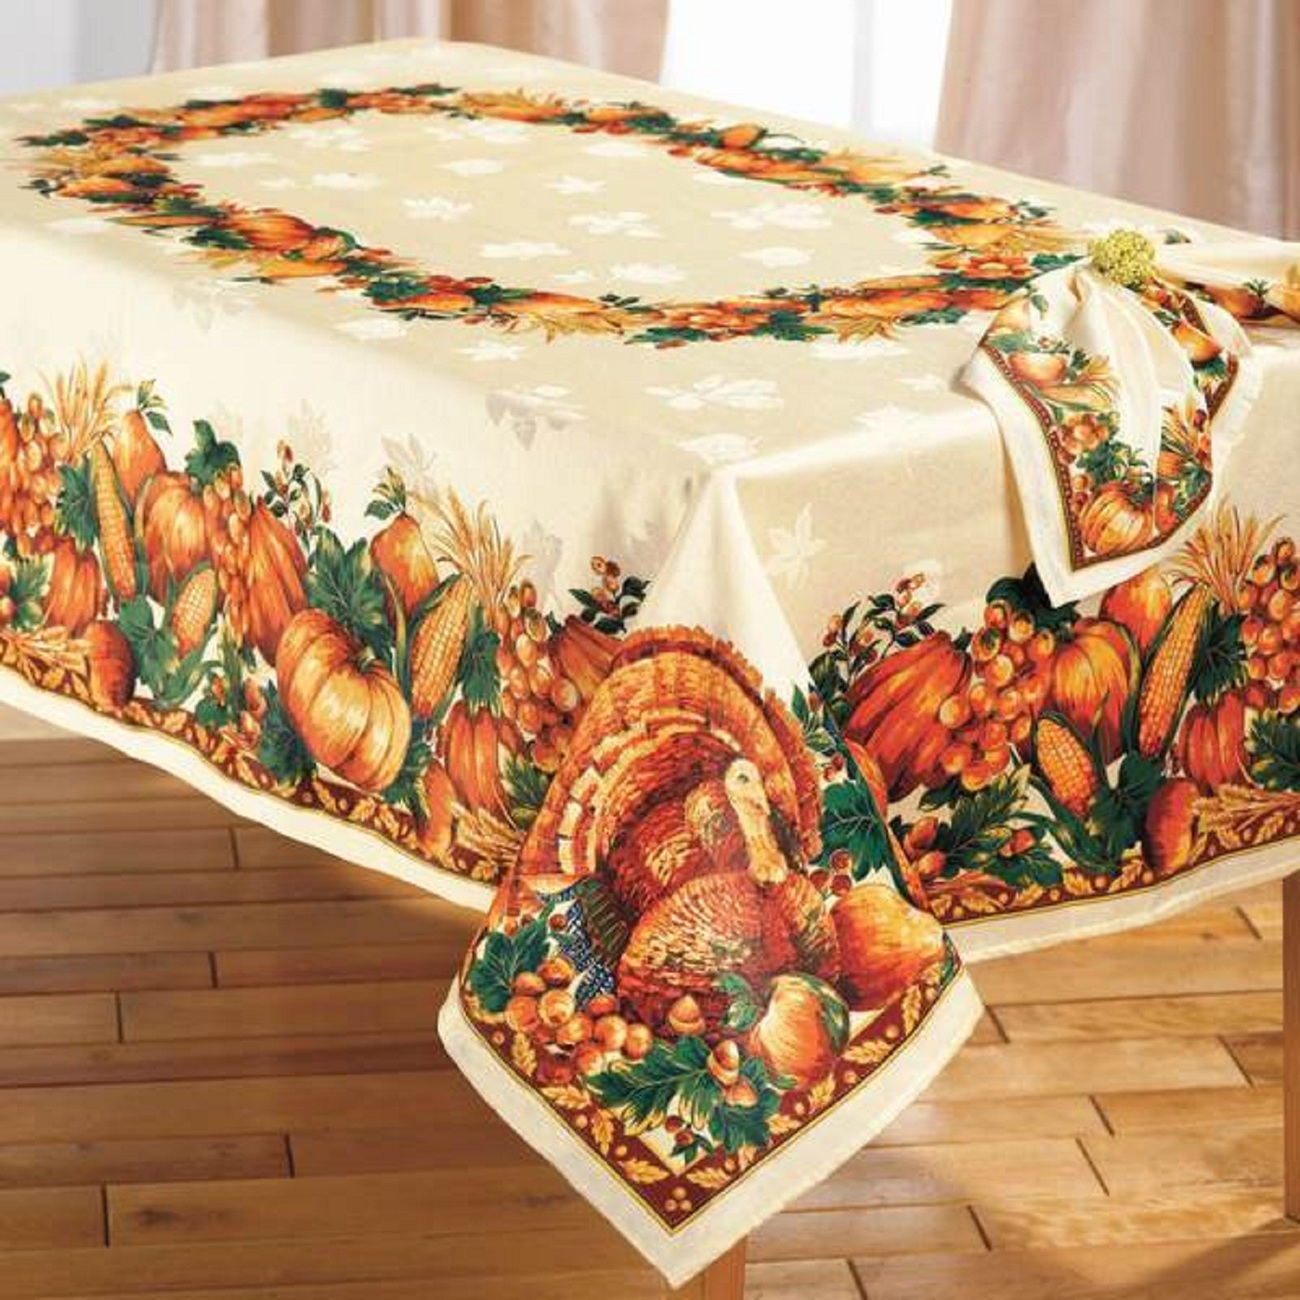 ELEGANT THANKSGIVING TURKEY HARVEST TABLECLOTH Table